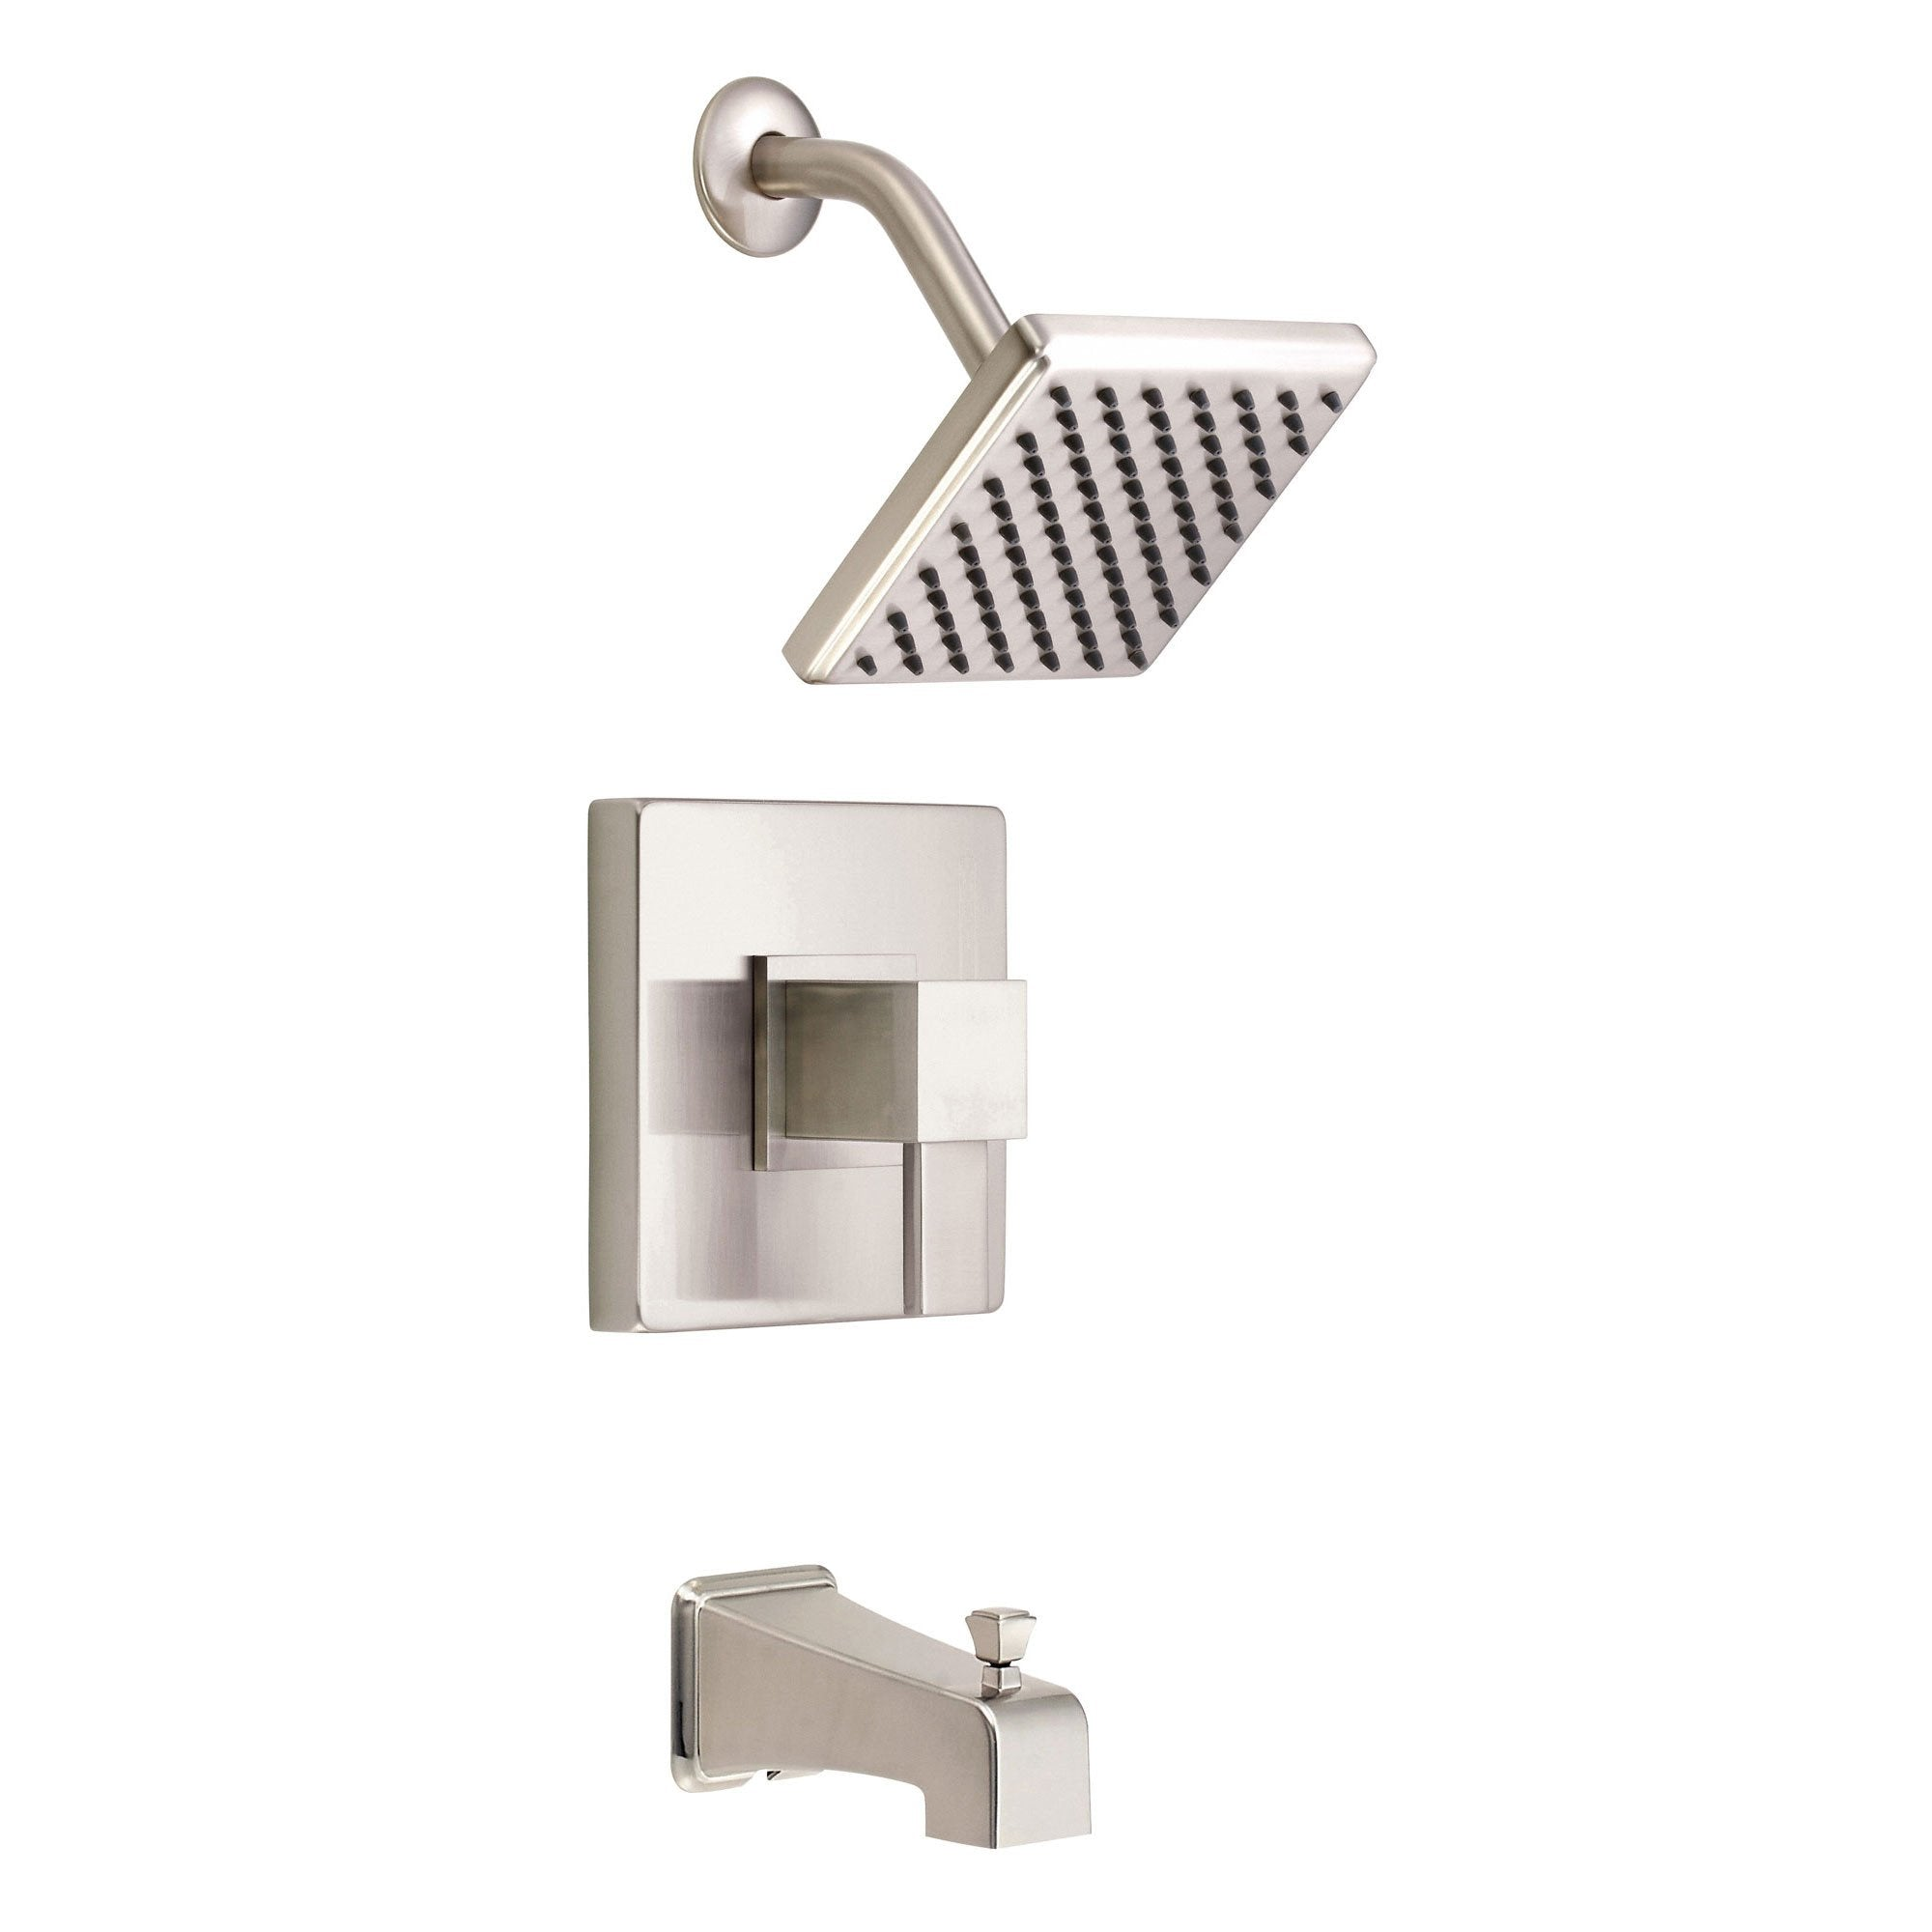 Danze Reef Brushed Nickel Single Handle Tub and Shower Combination Faucet INCLUDES Rough-in Valve